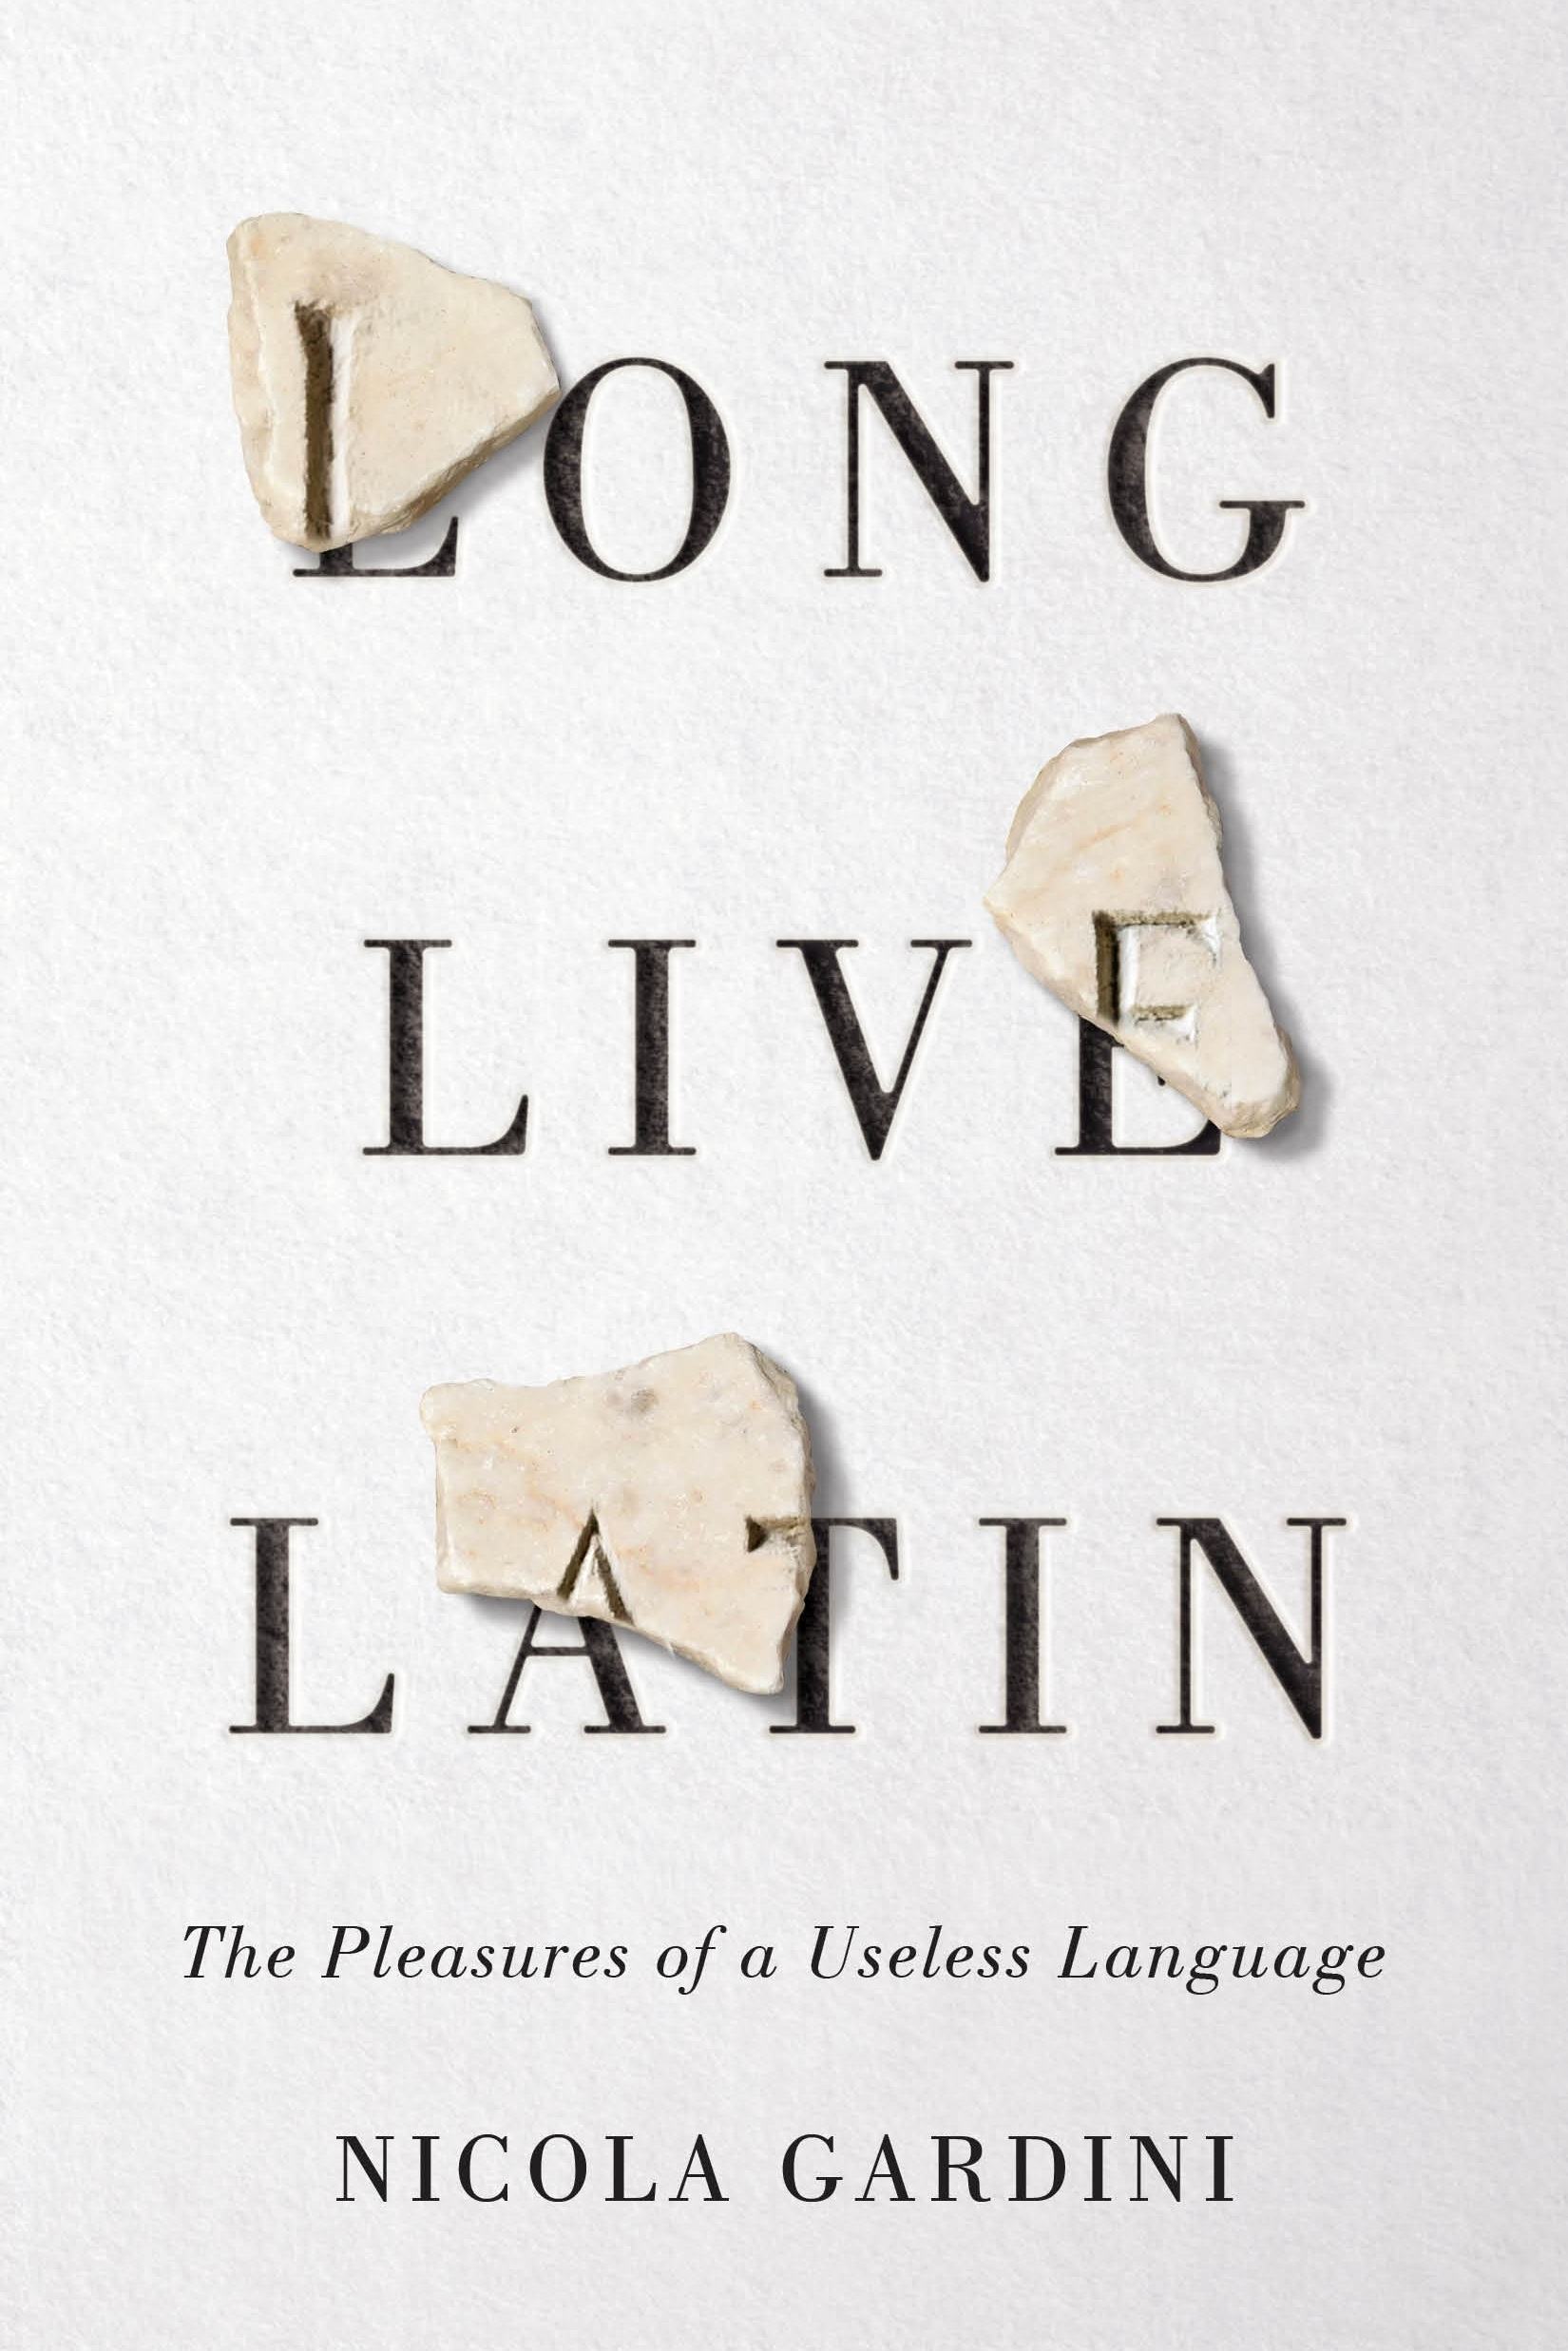 LONG LIVE LATIN  by Nicola Gardini  Farrar, Straus and Giroux  October 2019